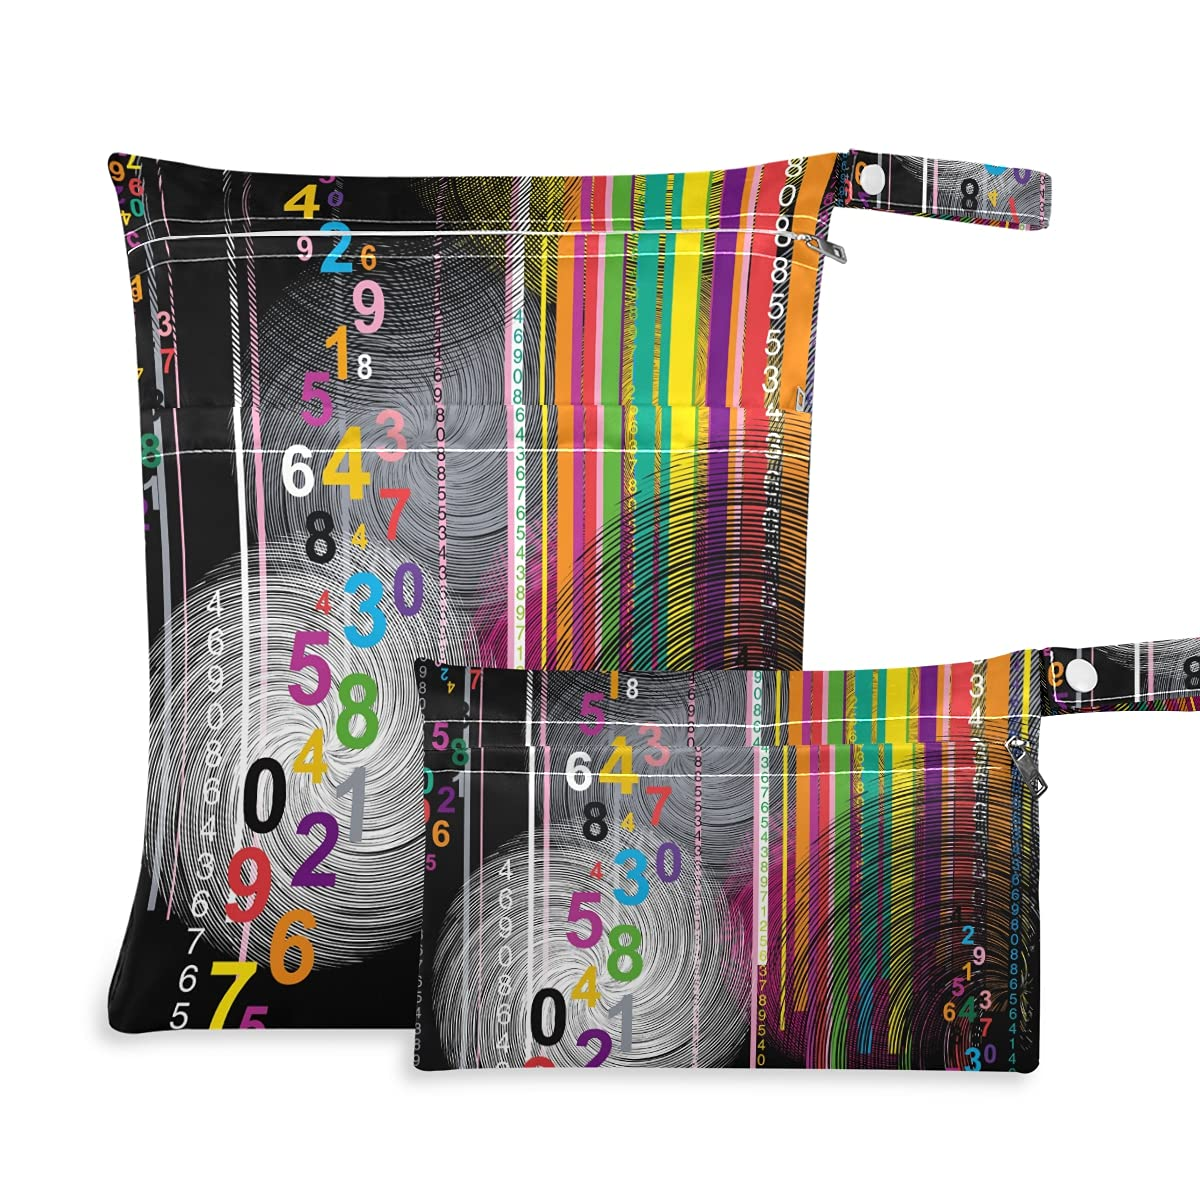 Digital Rainbow New Free Shipping Wet Dry Free Shipping Cheap Bargain Gift Bag Diaper Reusable Swimsuit for